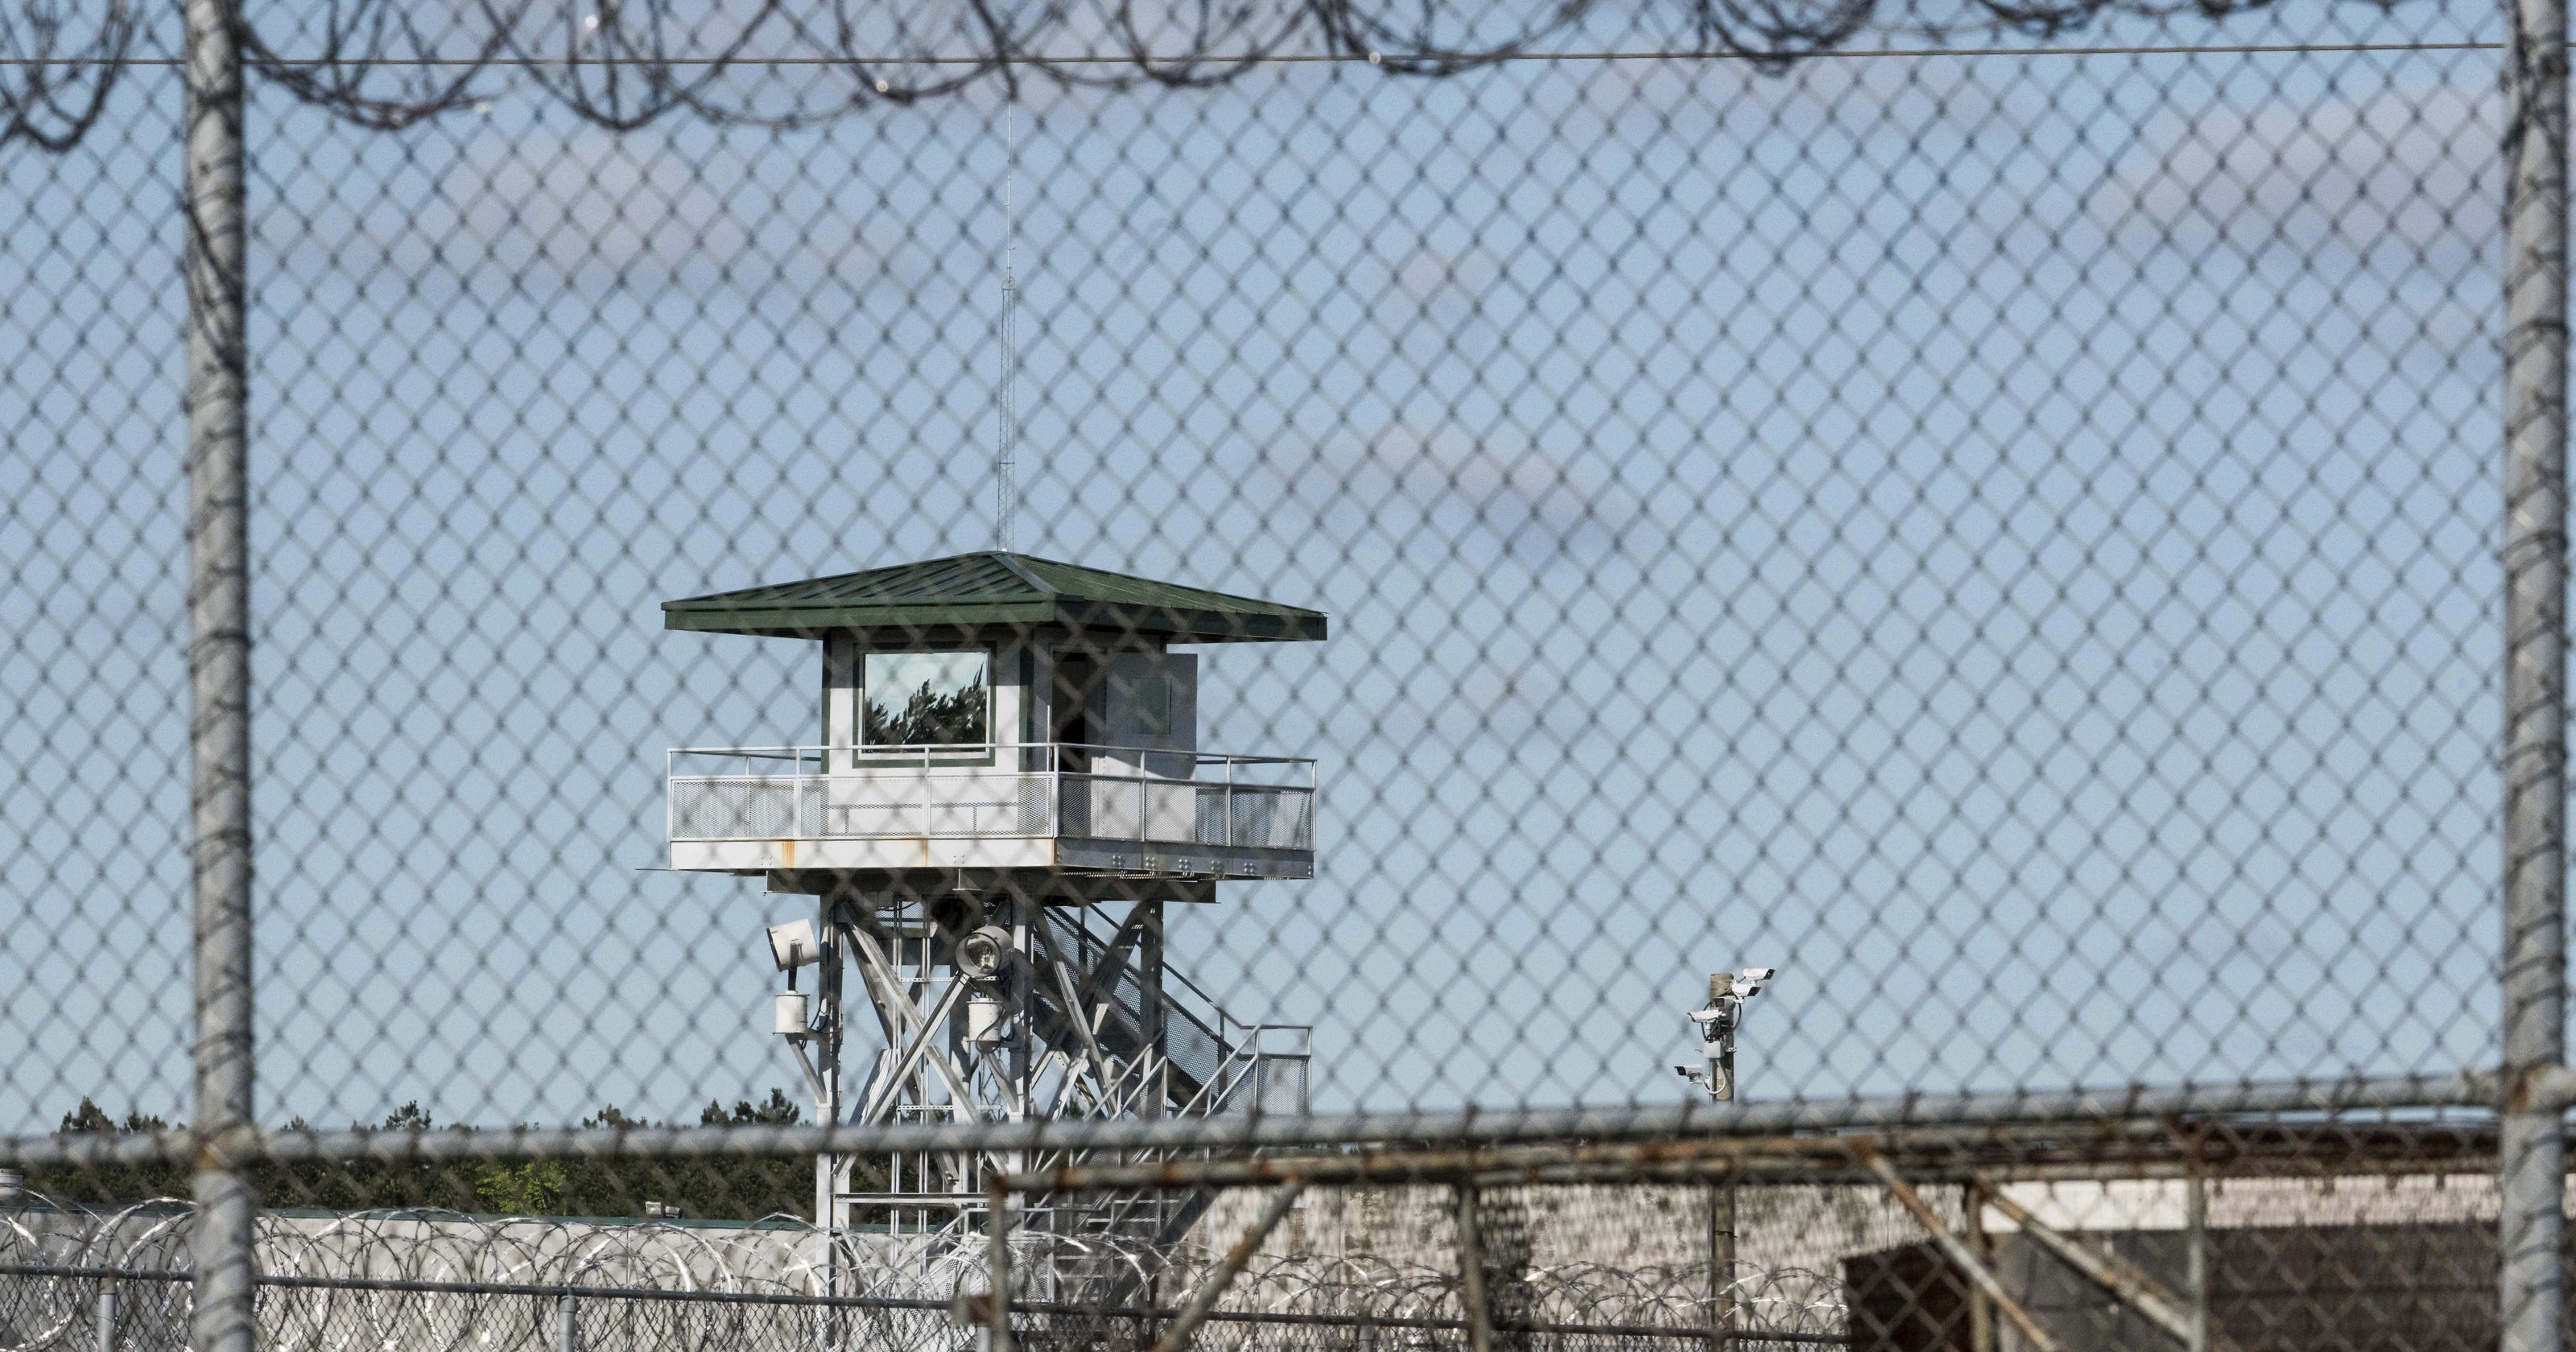 South Carolina moves problem inmates to Mississippi